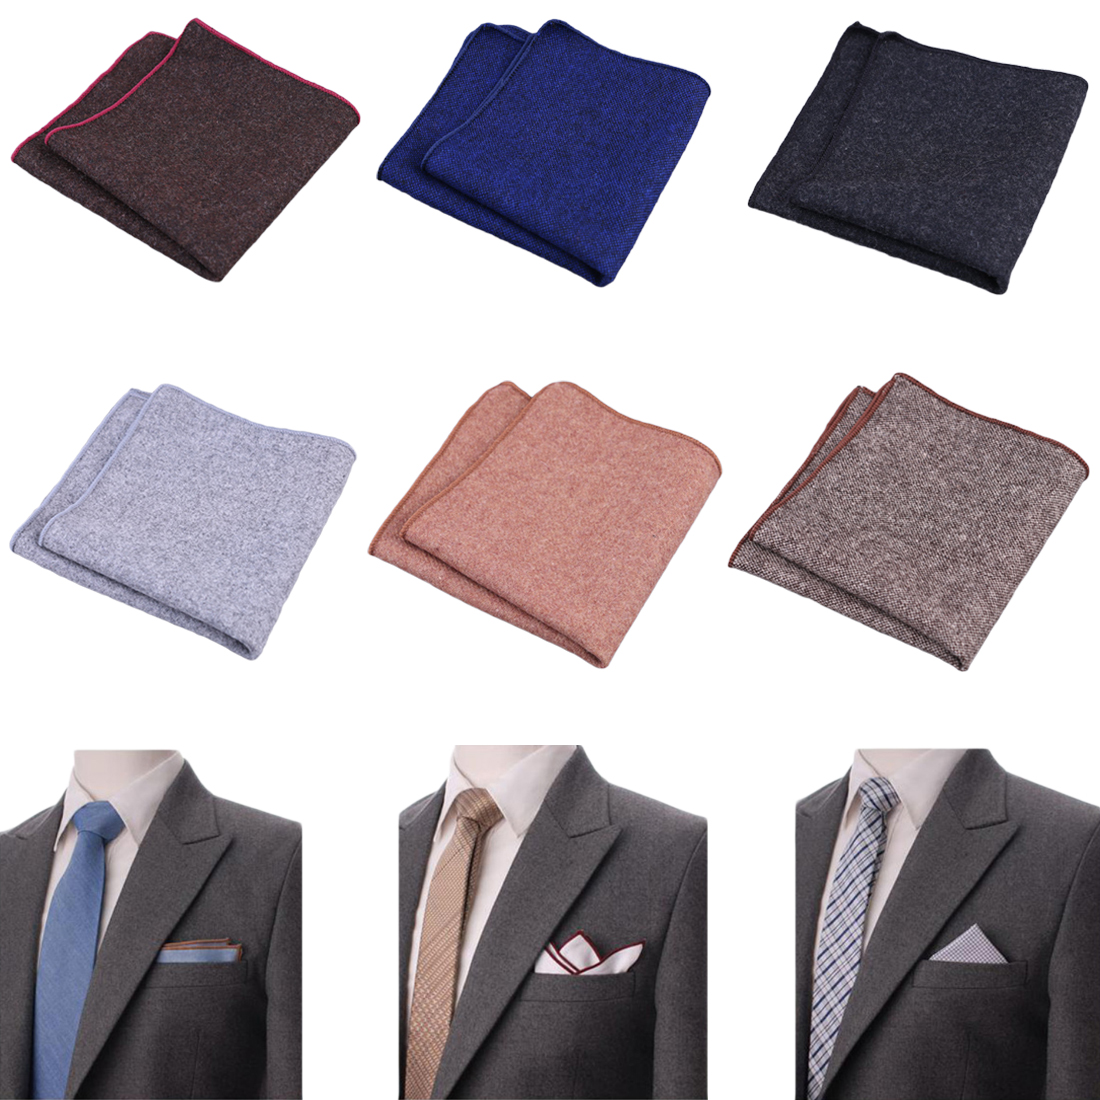 Men's Pocket Square Handkerchiefs Striped Solid Cotton 23*23cm High Quality Hankerchief Vintage Suits Solid Pocket Wool Hankies